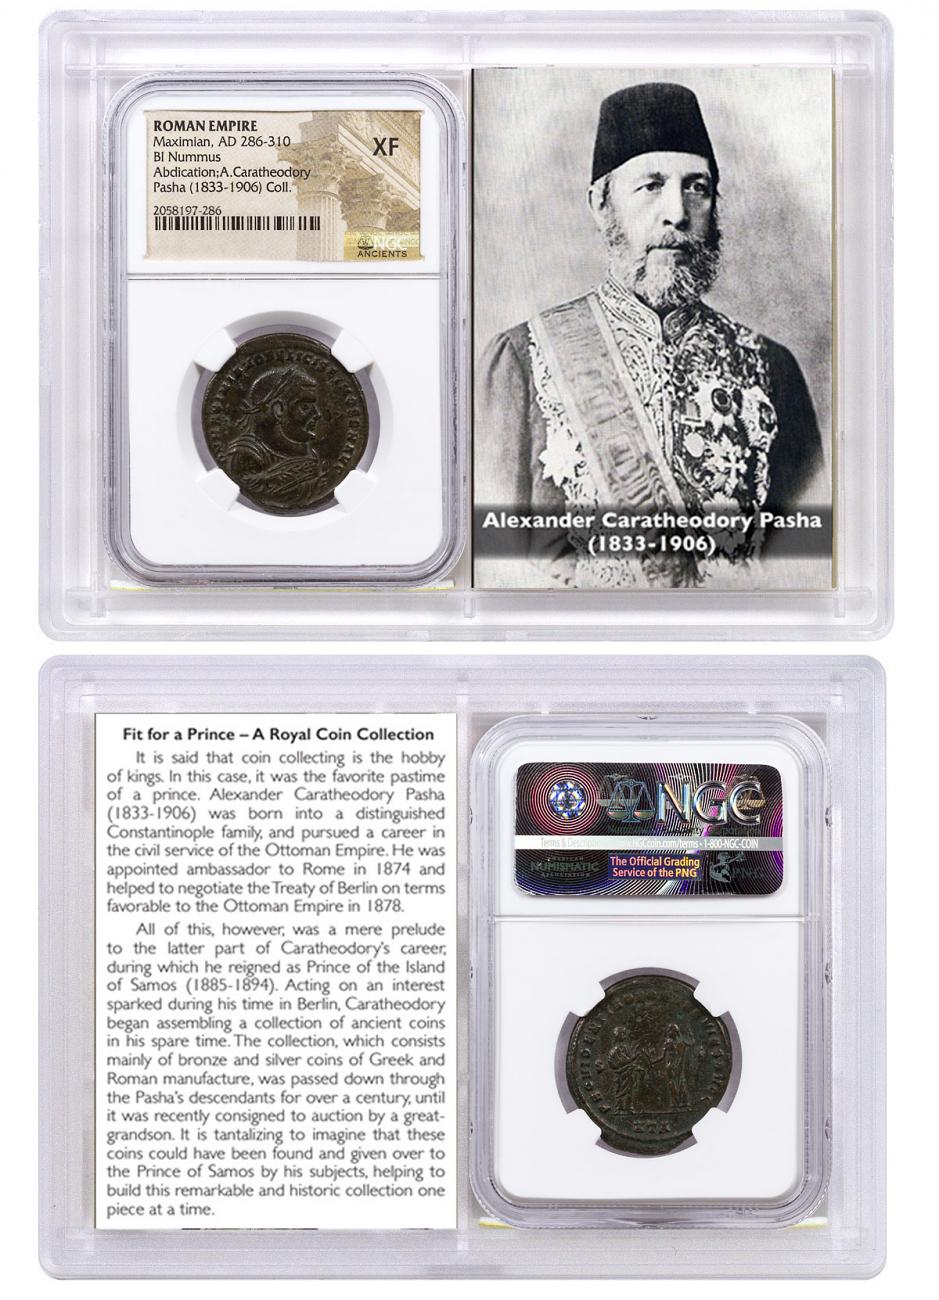 Roman Empire, Billon Nummus of Maximian (AD 286-310) Abdication Issue - ex. Alexander Pasha, Prince of Samos NGC XF (Story Vault)